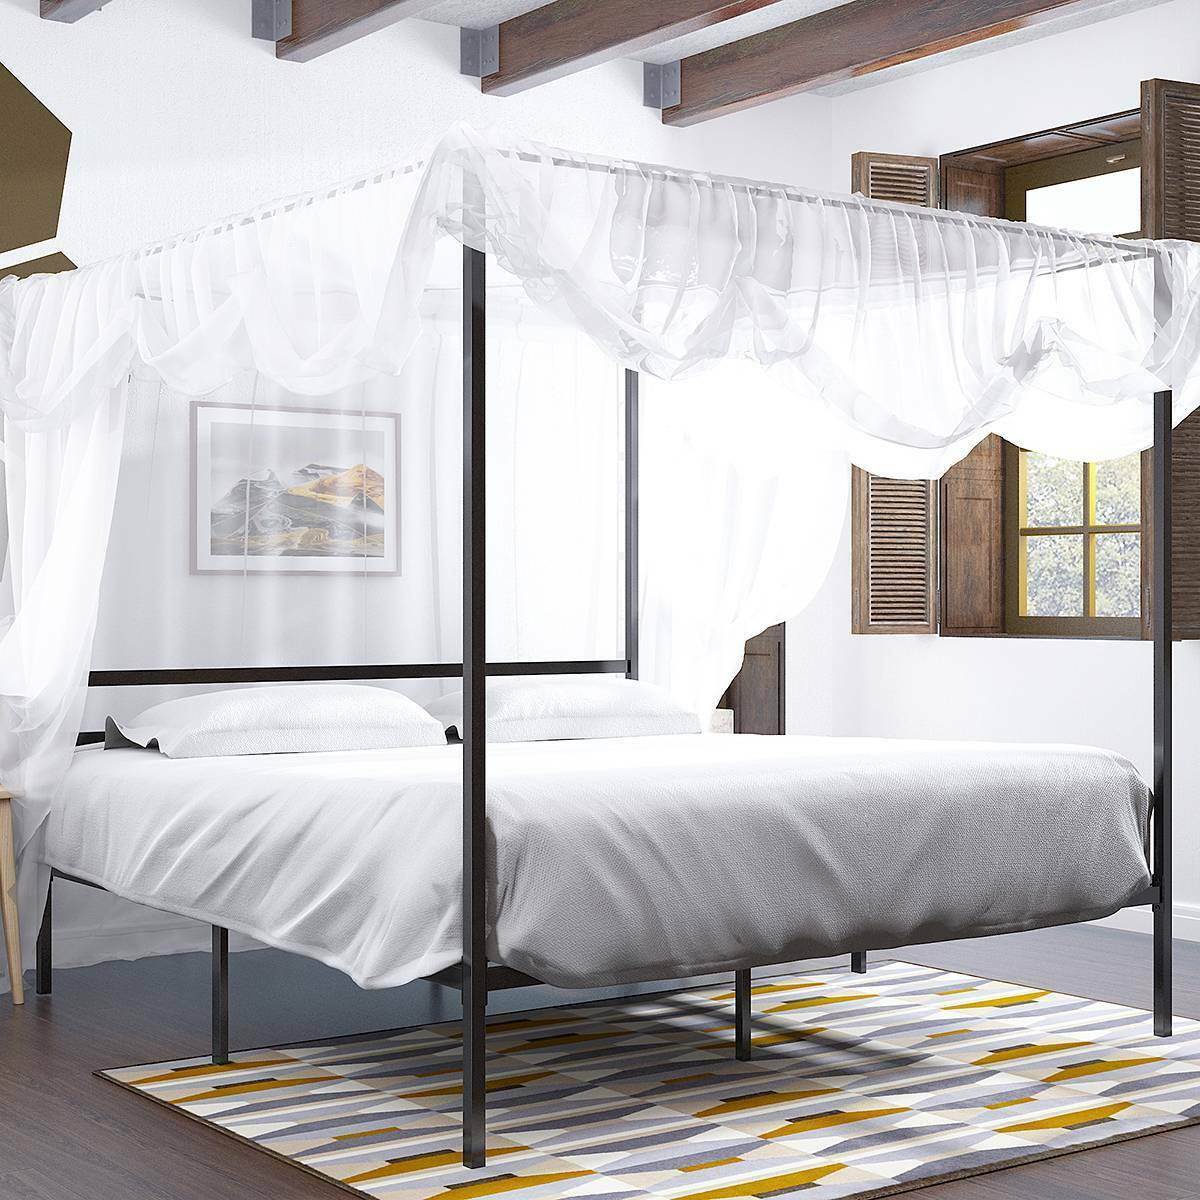 Wrought Iron King Size Canopy Bed For Sale Online Ebay